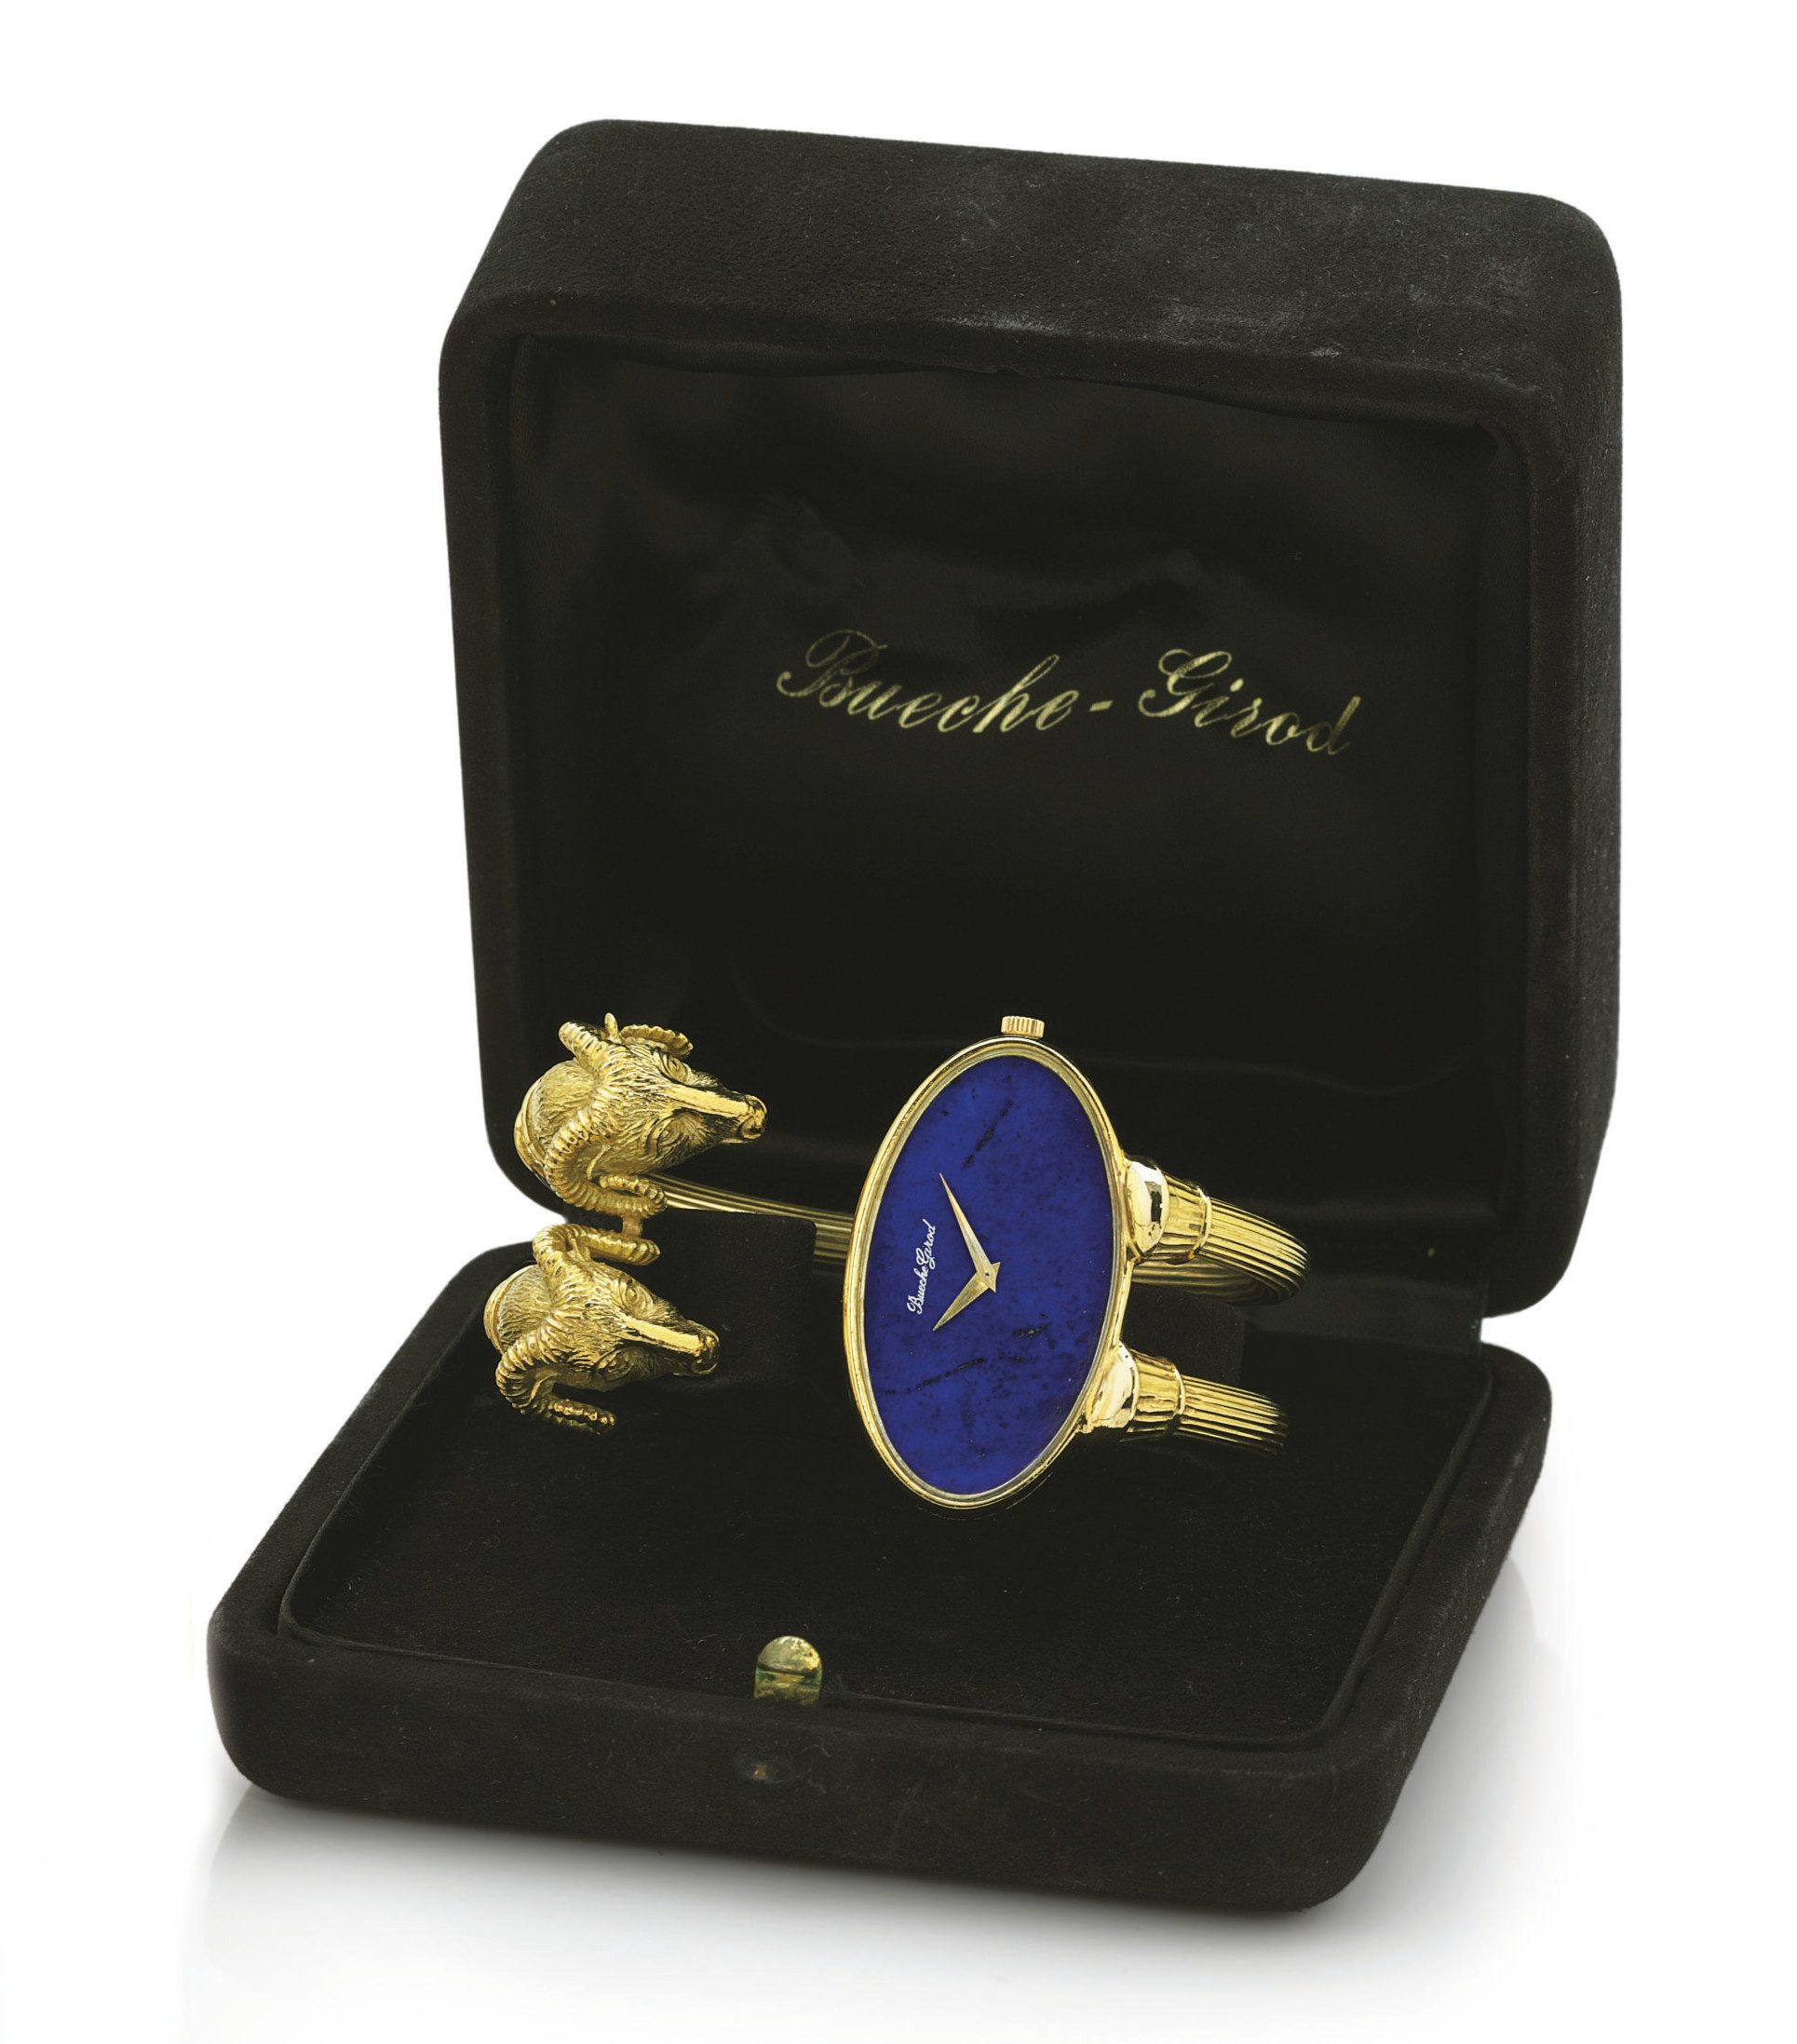 BUECHE GIROD. A FINE AND RARE 18K GOLD AND LAPIS LAZULI OVAL BANGLE BRACELET WATCH